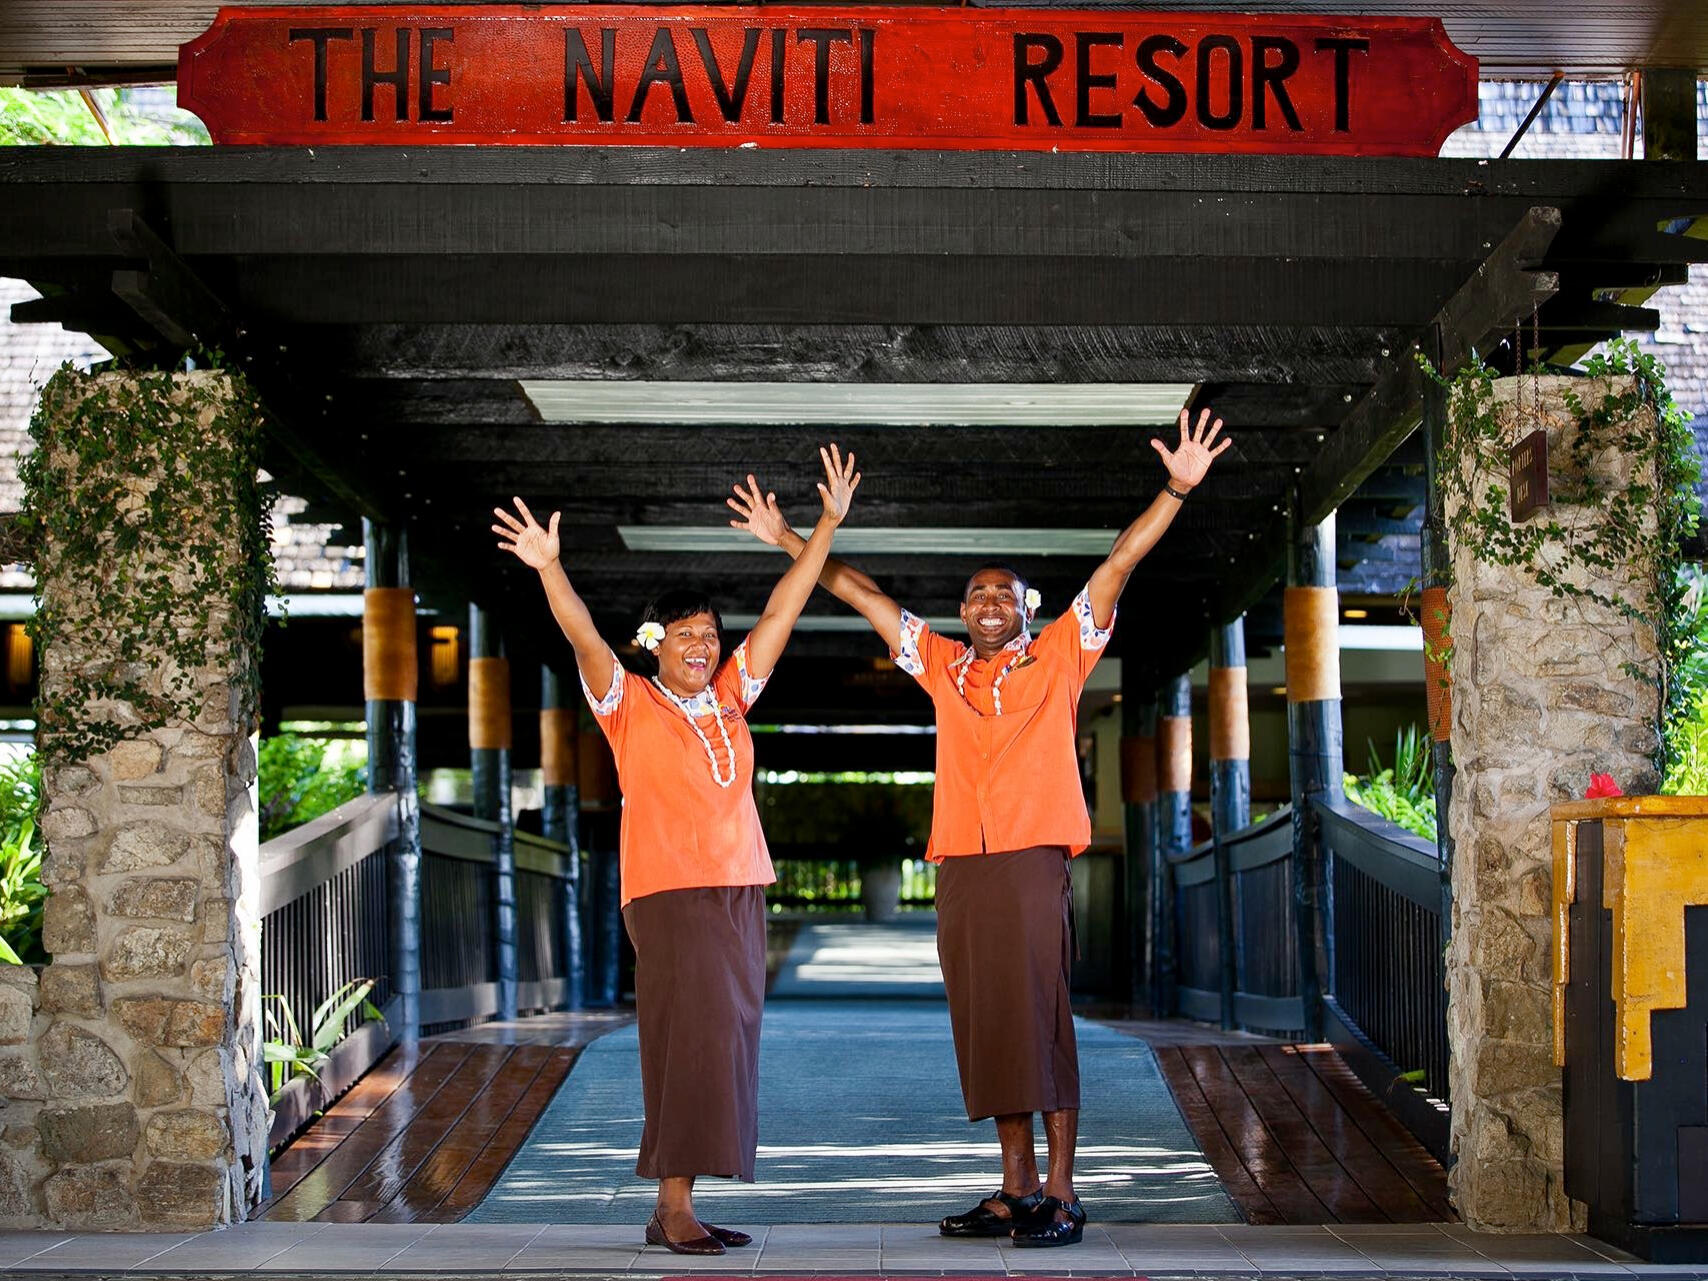 hotel workers happy at the entrance Naviti Resort Fiji